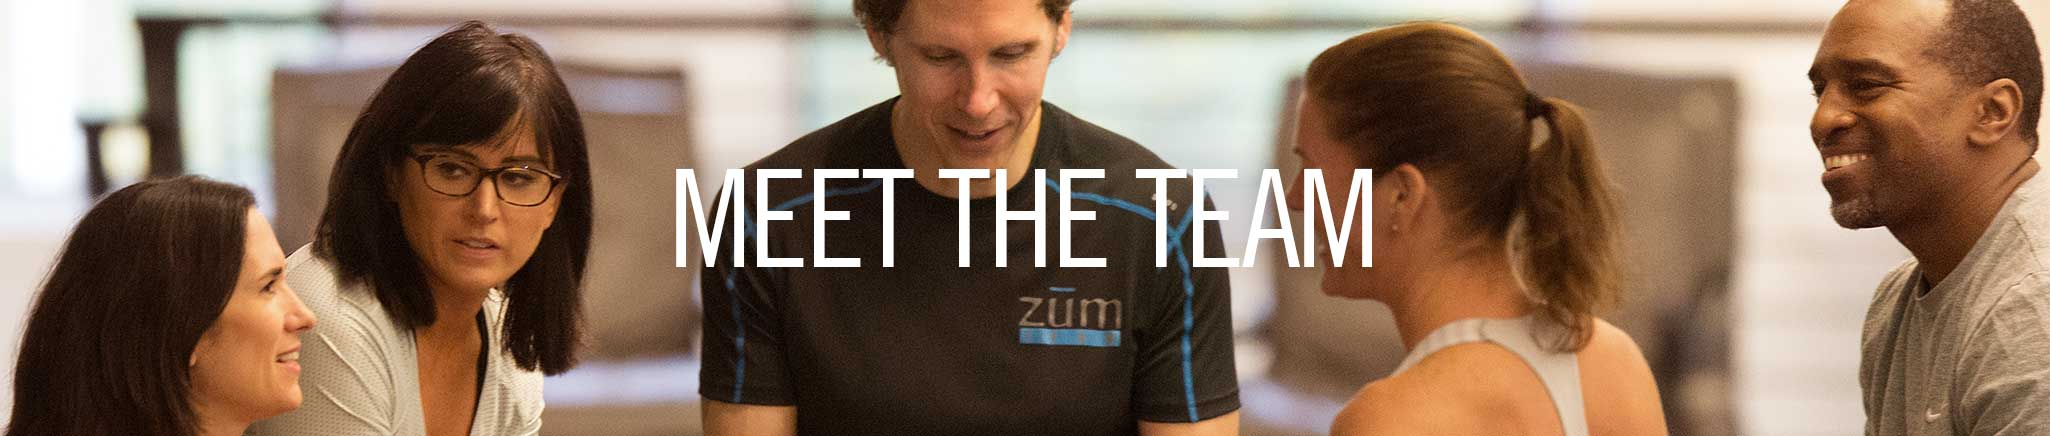 Meet The Team: ZUM Fitness in the heart of downtown Seattle